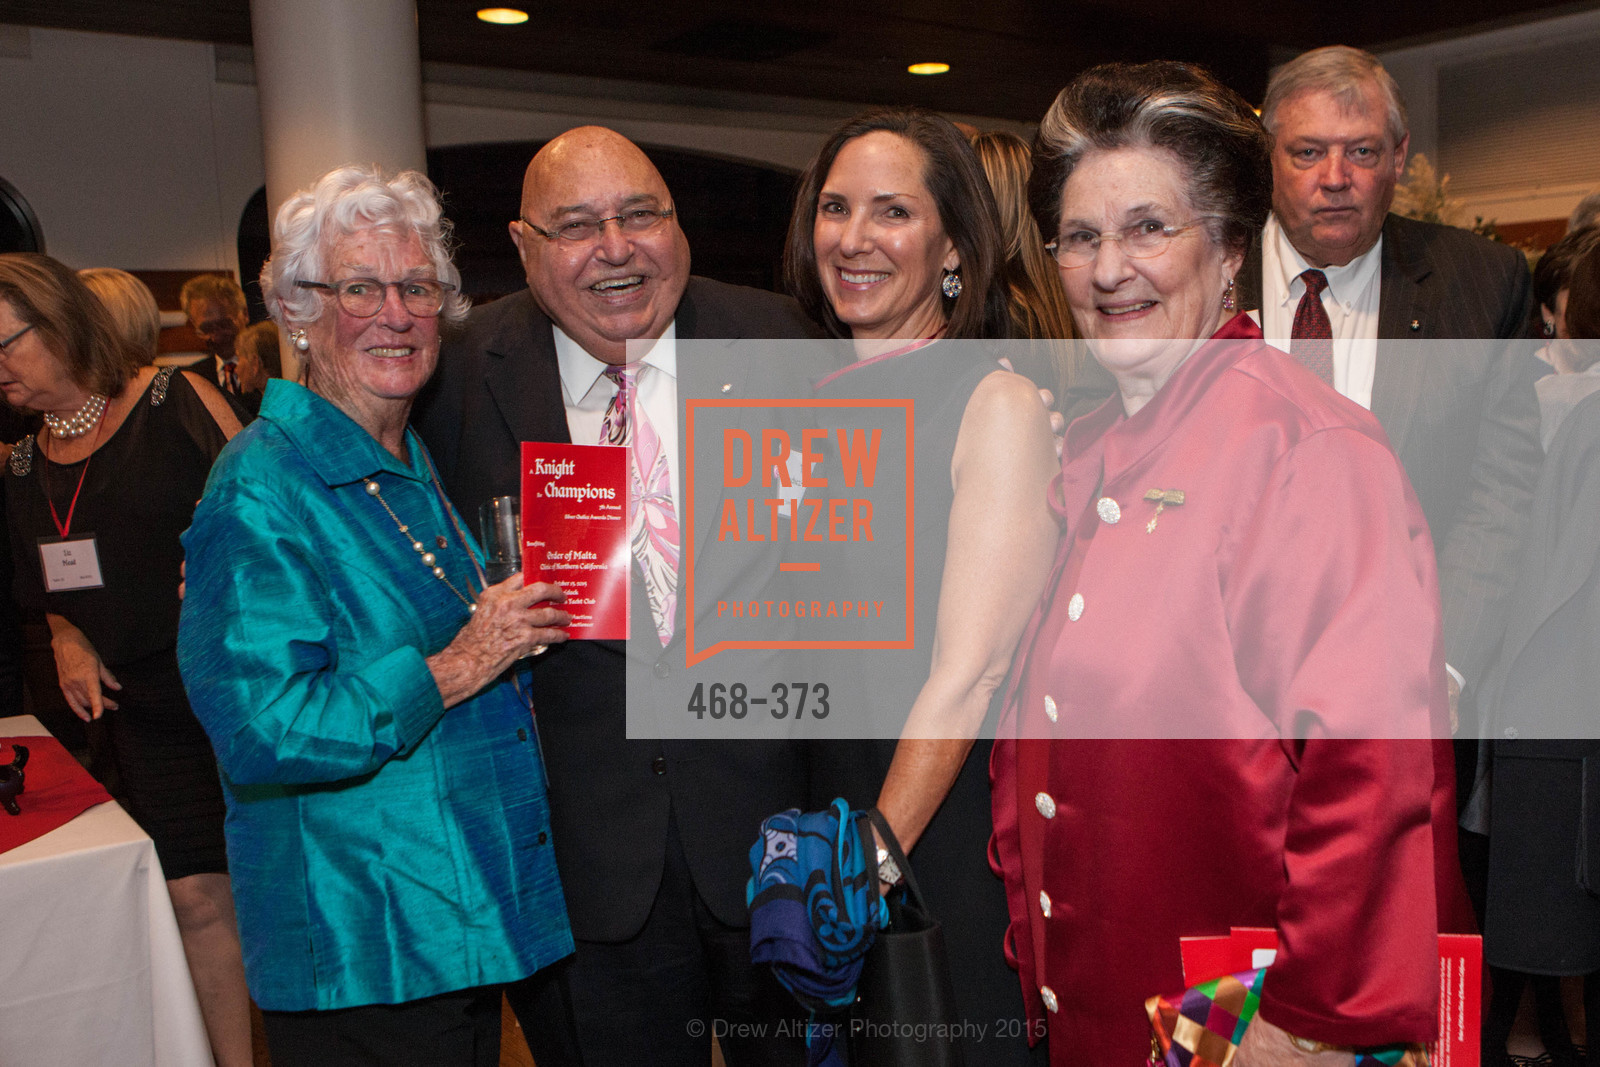 Sheila Carmassi, Tony Sanchez-Corea, Janice Meisel, Lucille Sanchez-Corea, Sovereign Order of Malta Presents: A Knight for Champions, 7th Annual Silver Chalice Awards Dinner, St. Francis Yacht Club. 99 Yacht Rd, October 13th, 2015,Drew Altizer, Drew Altizer Photography, full-service agency, private events, San Francisco photographer, photographer california